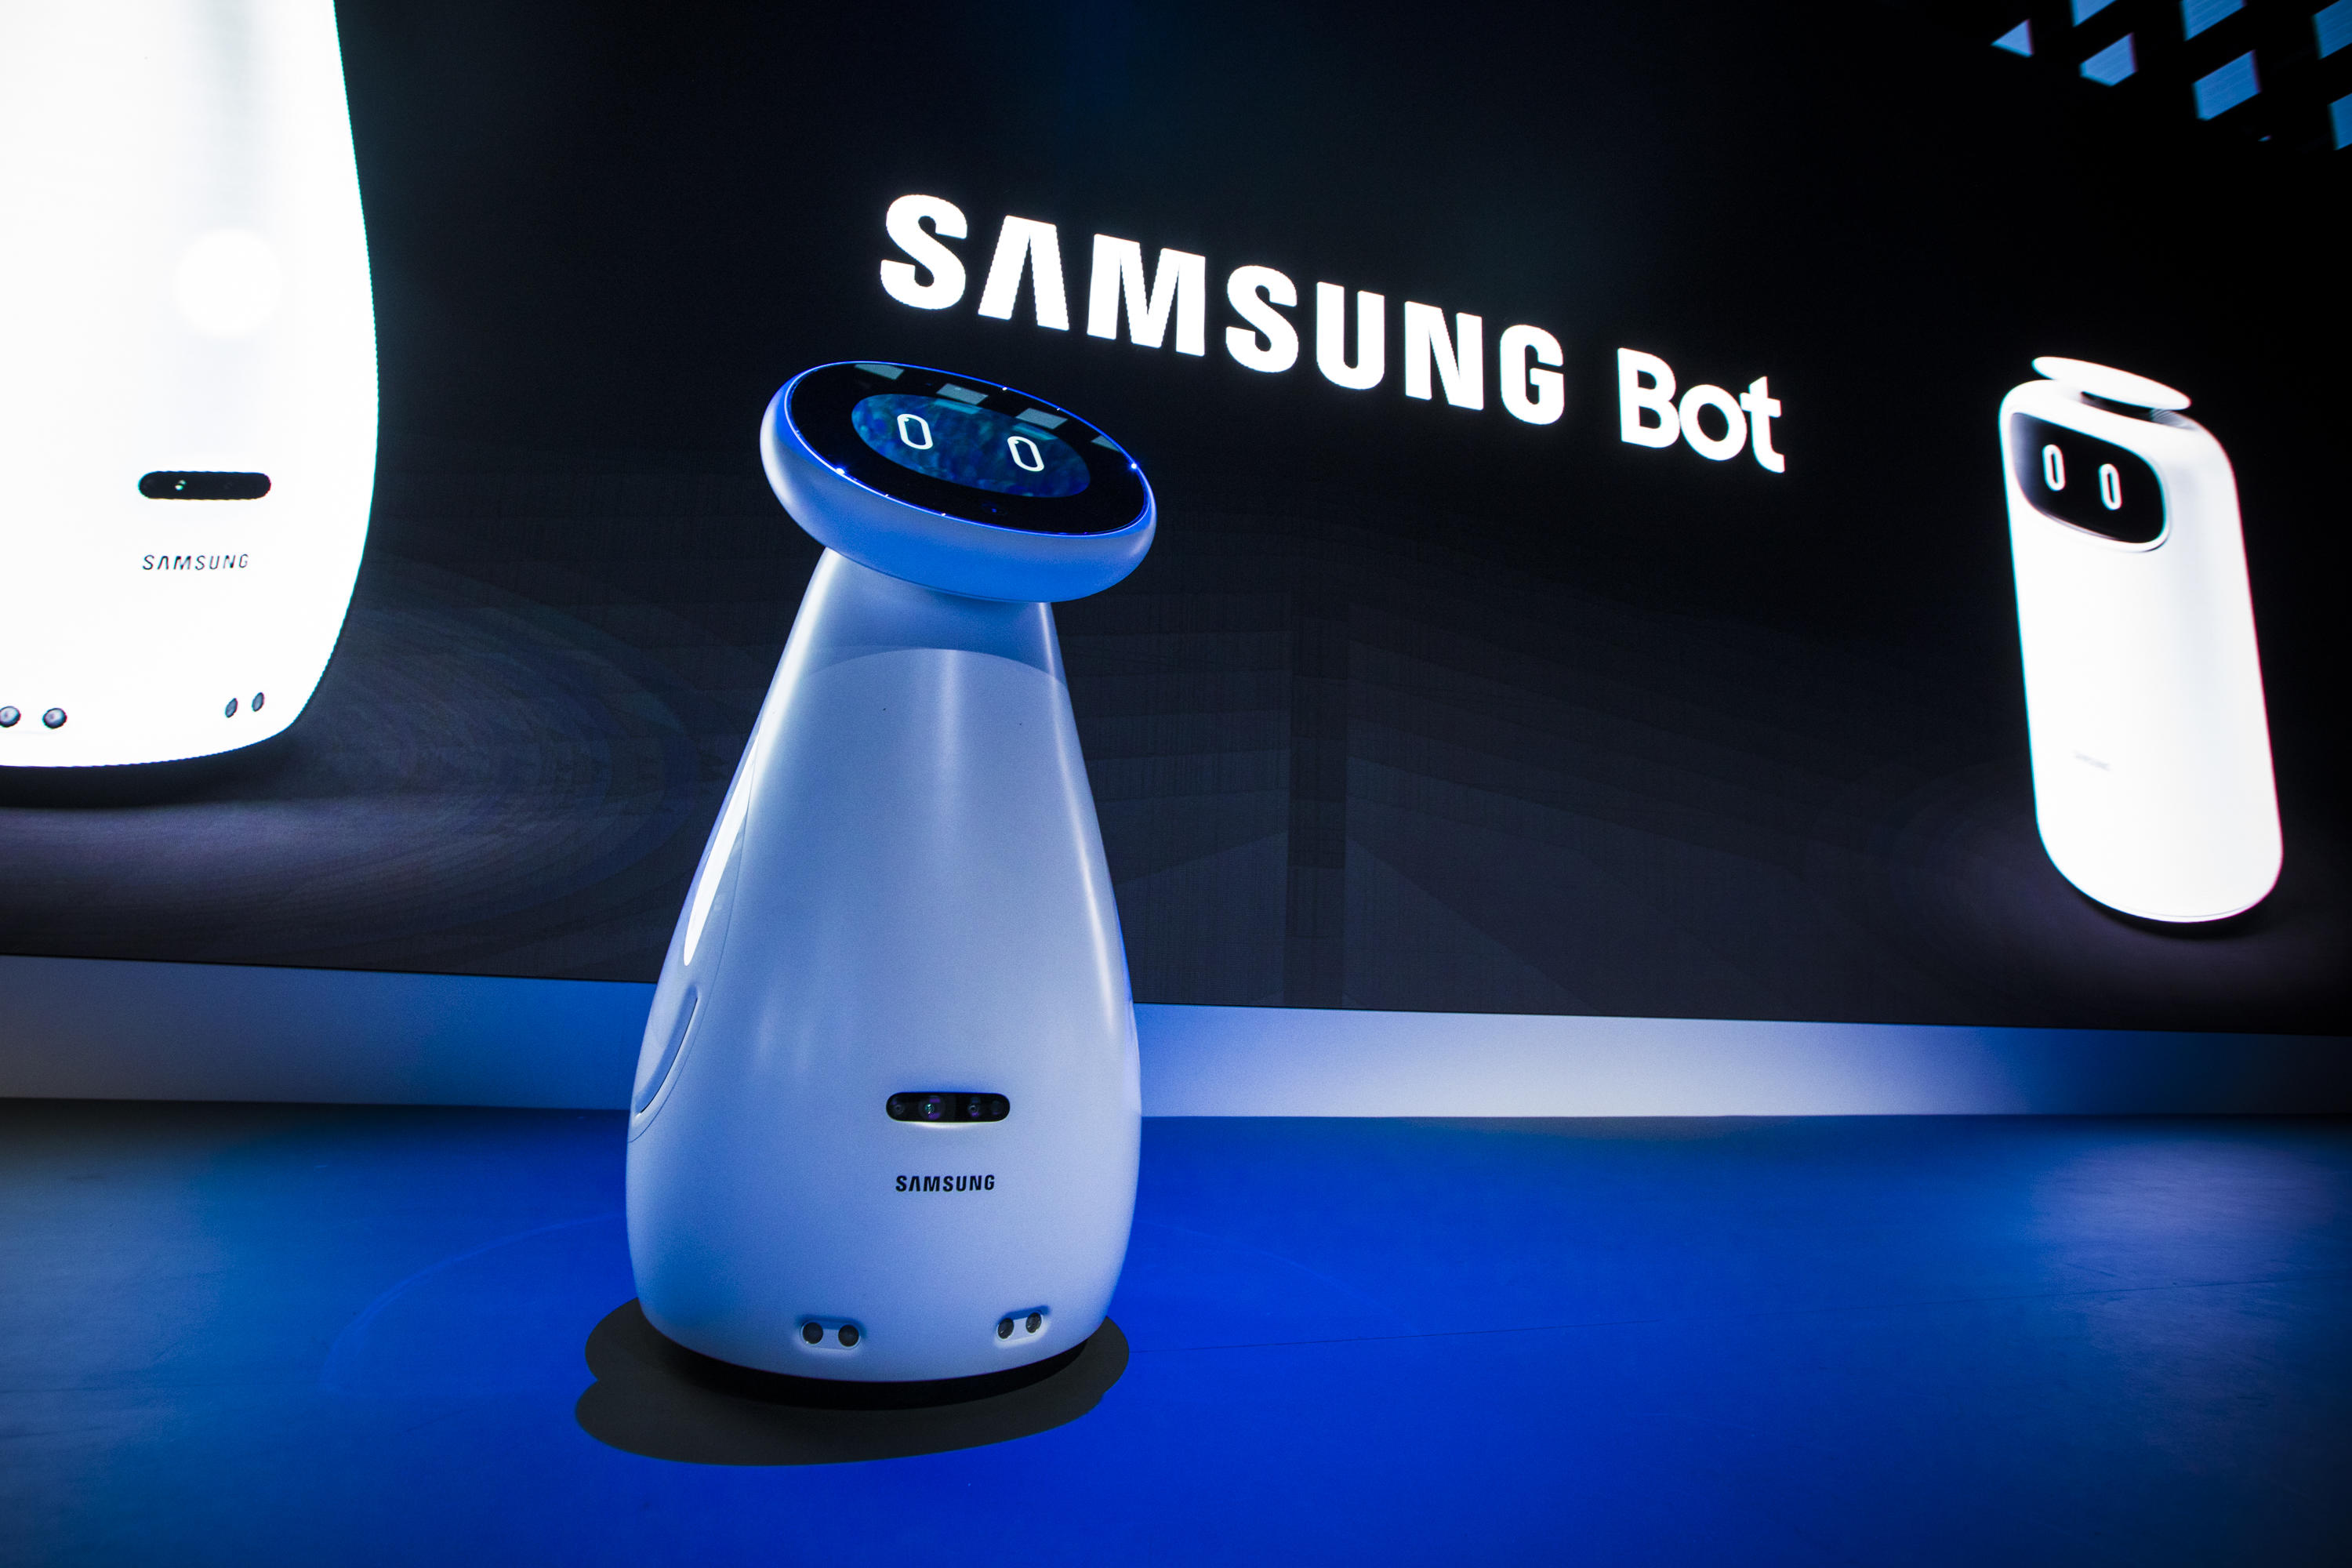 Samsung's Bot Care, 2019